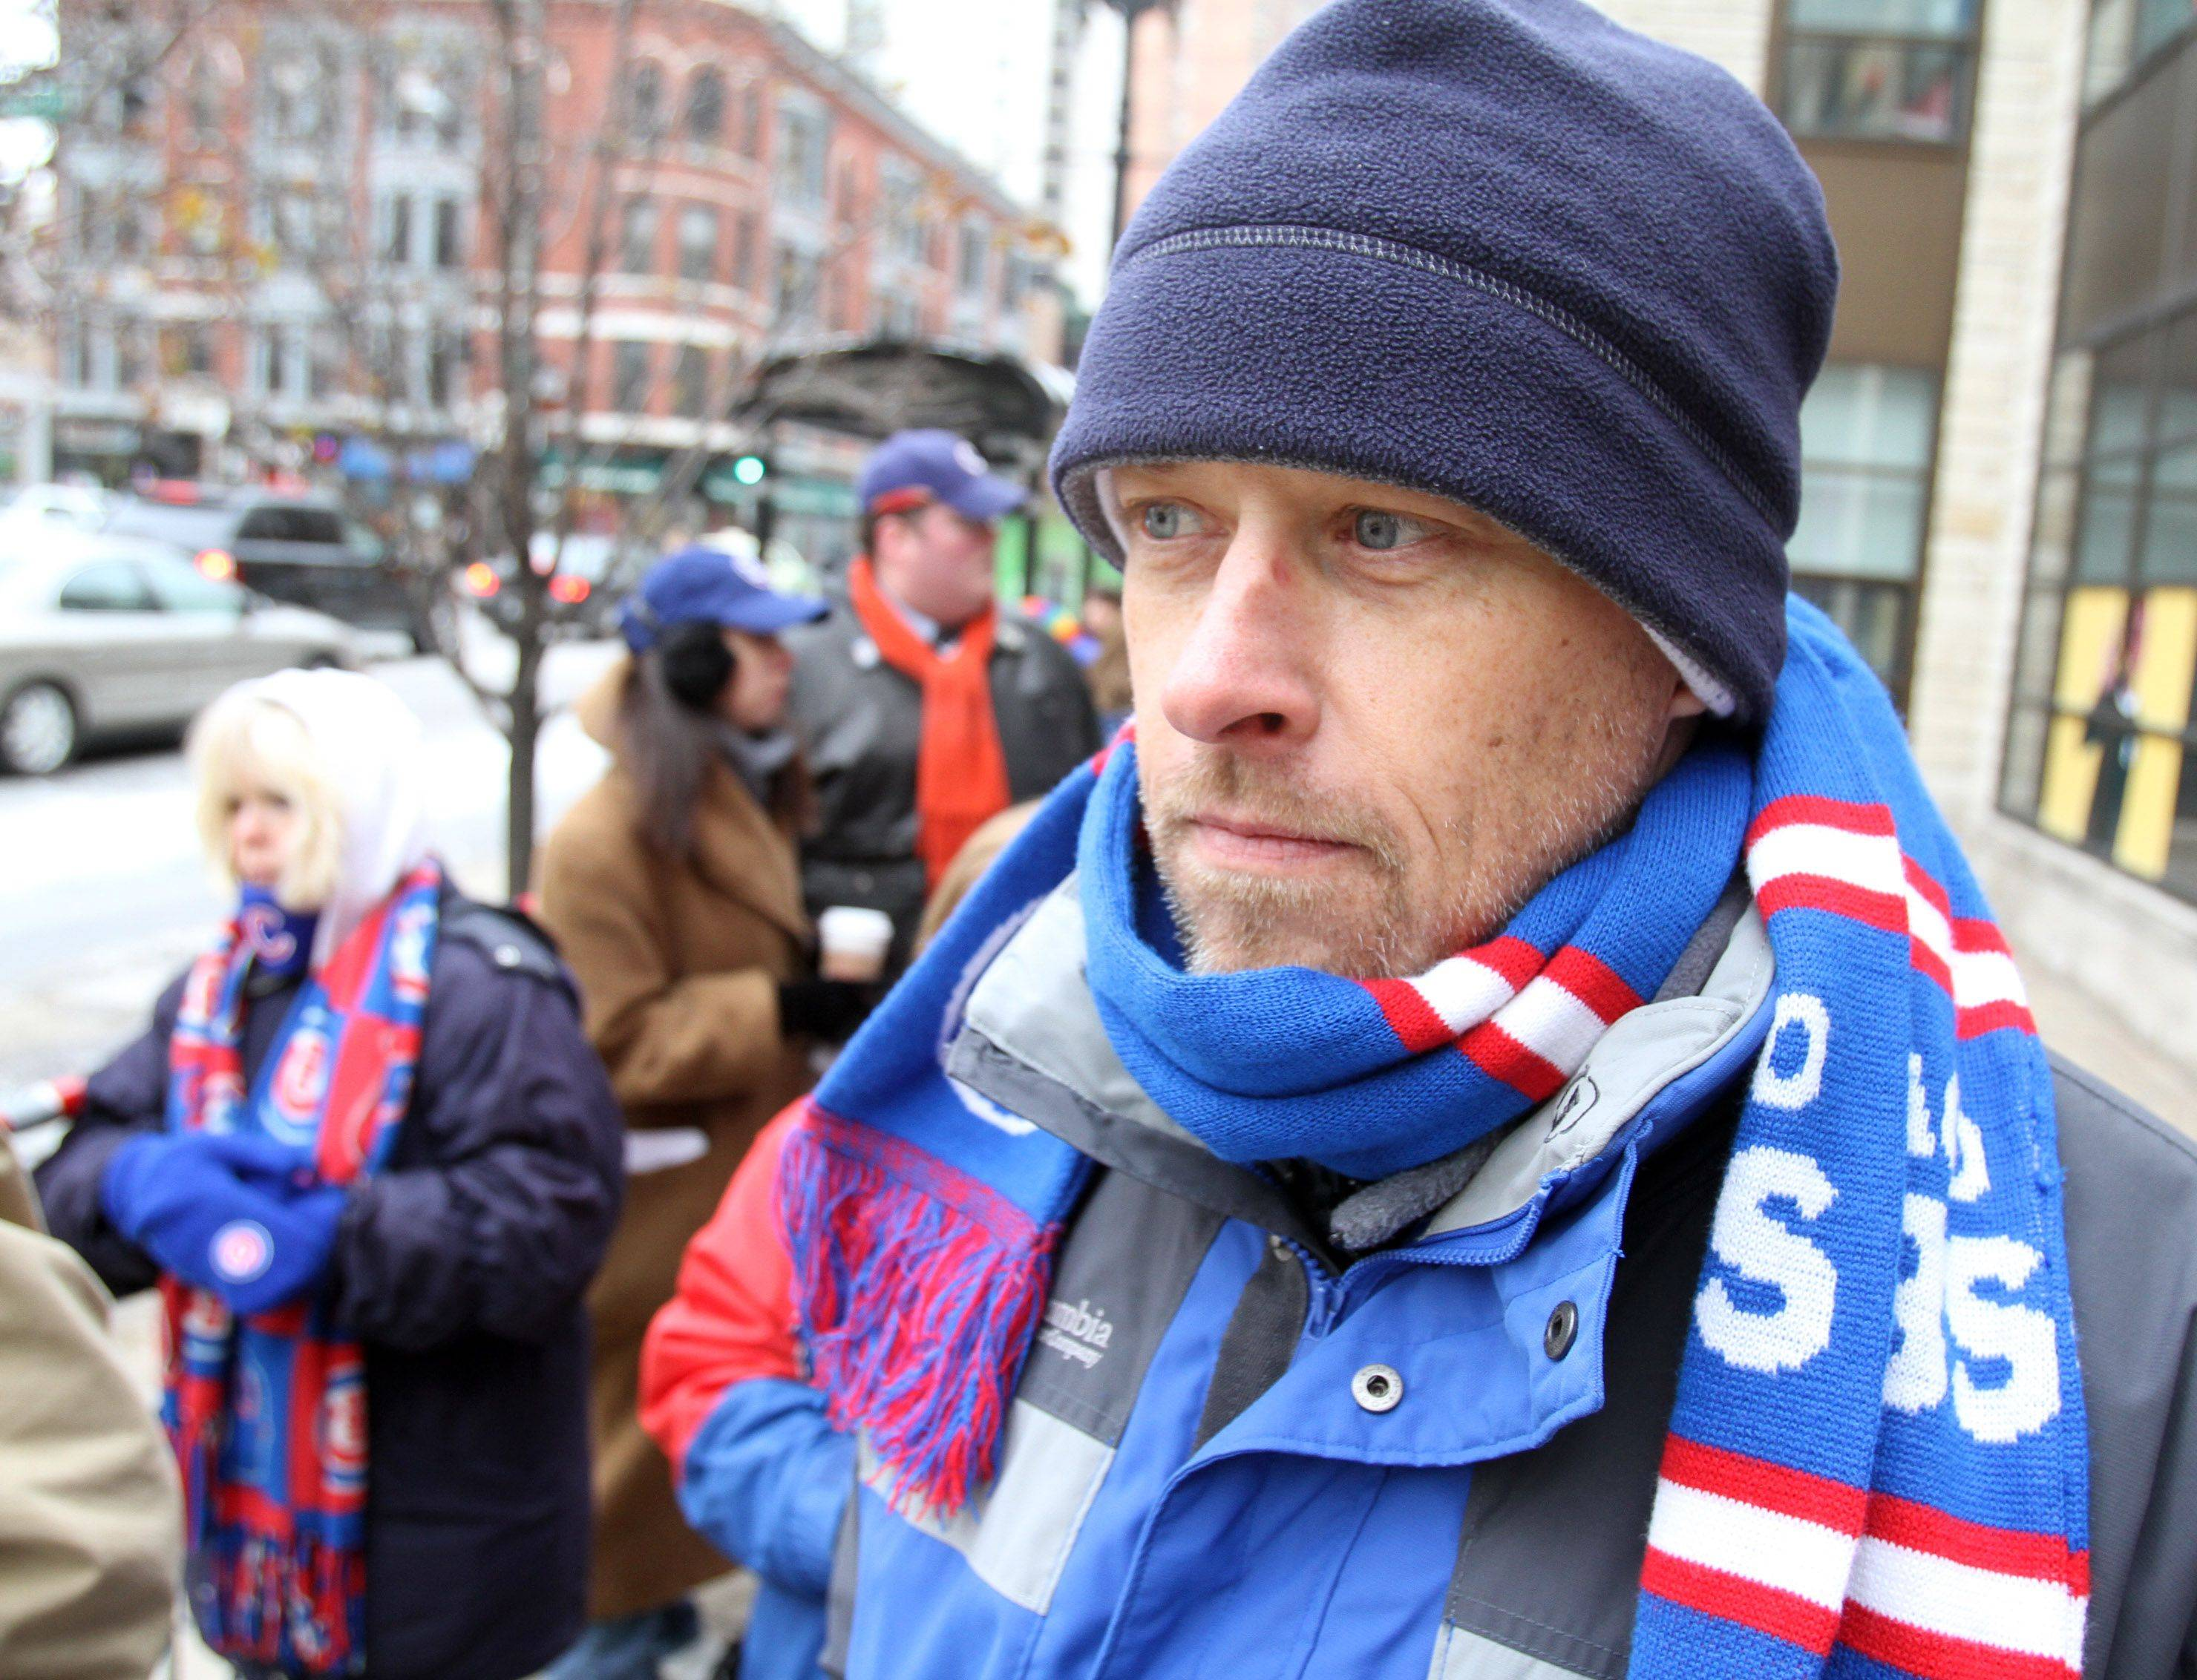 Cubs fan Scott Mulder of Peoria said he was in line at 6 a.m. for the 4 p.m. public visitation.